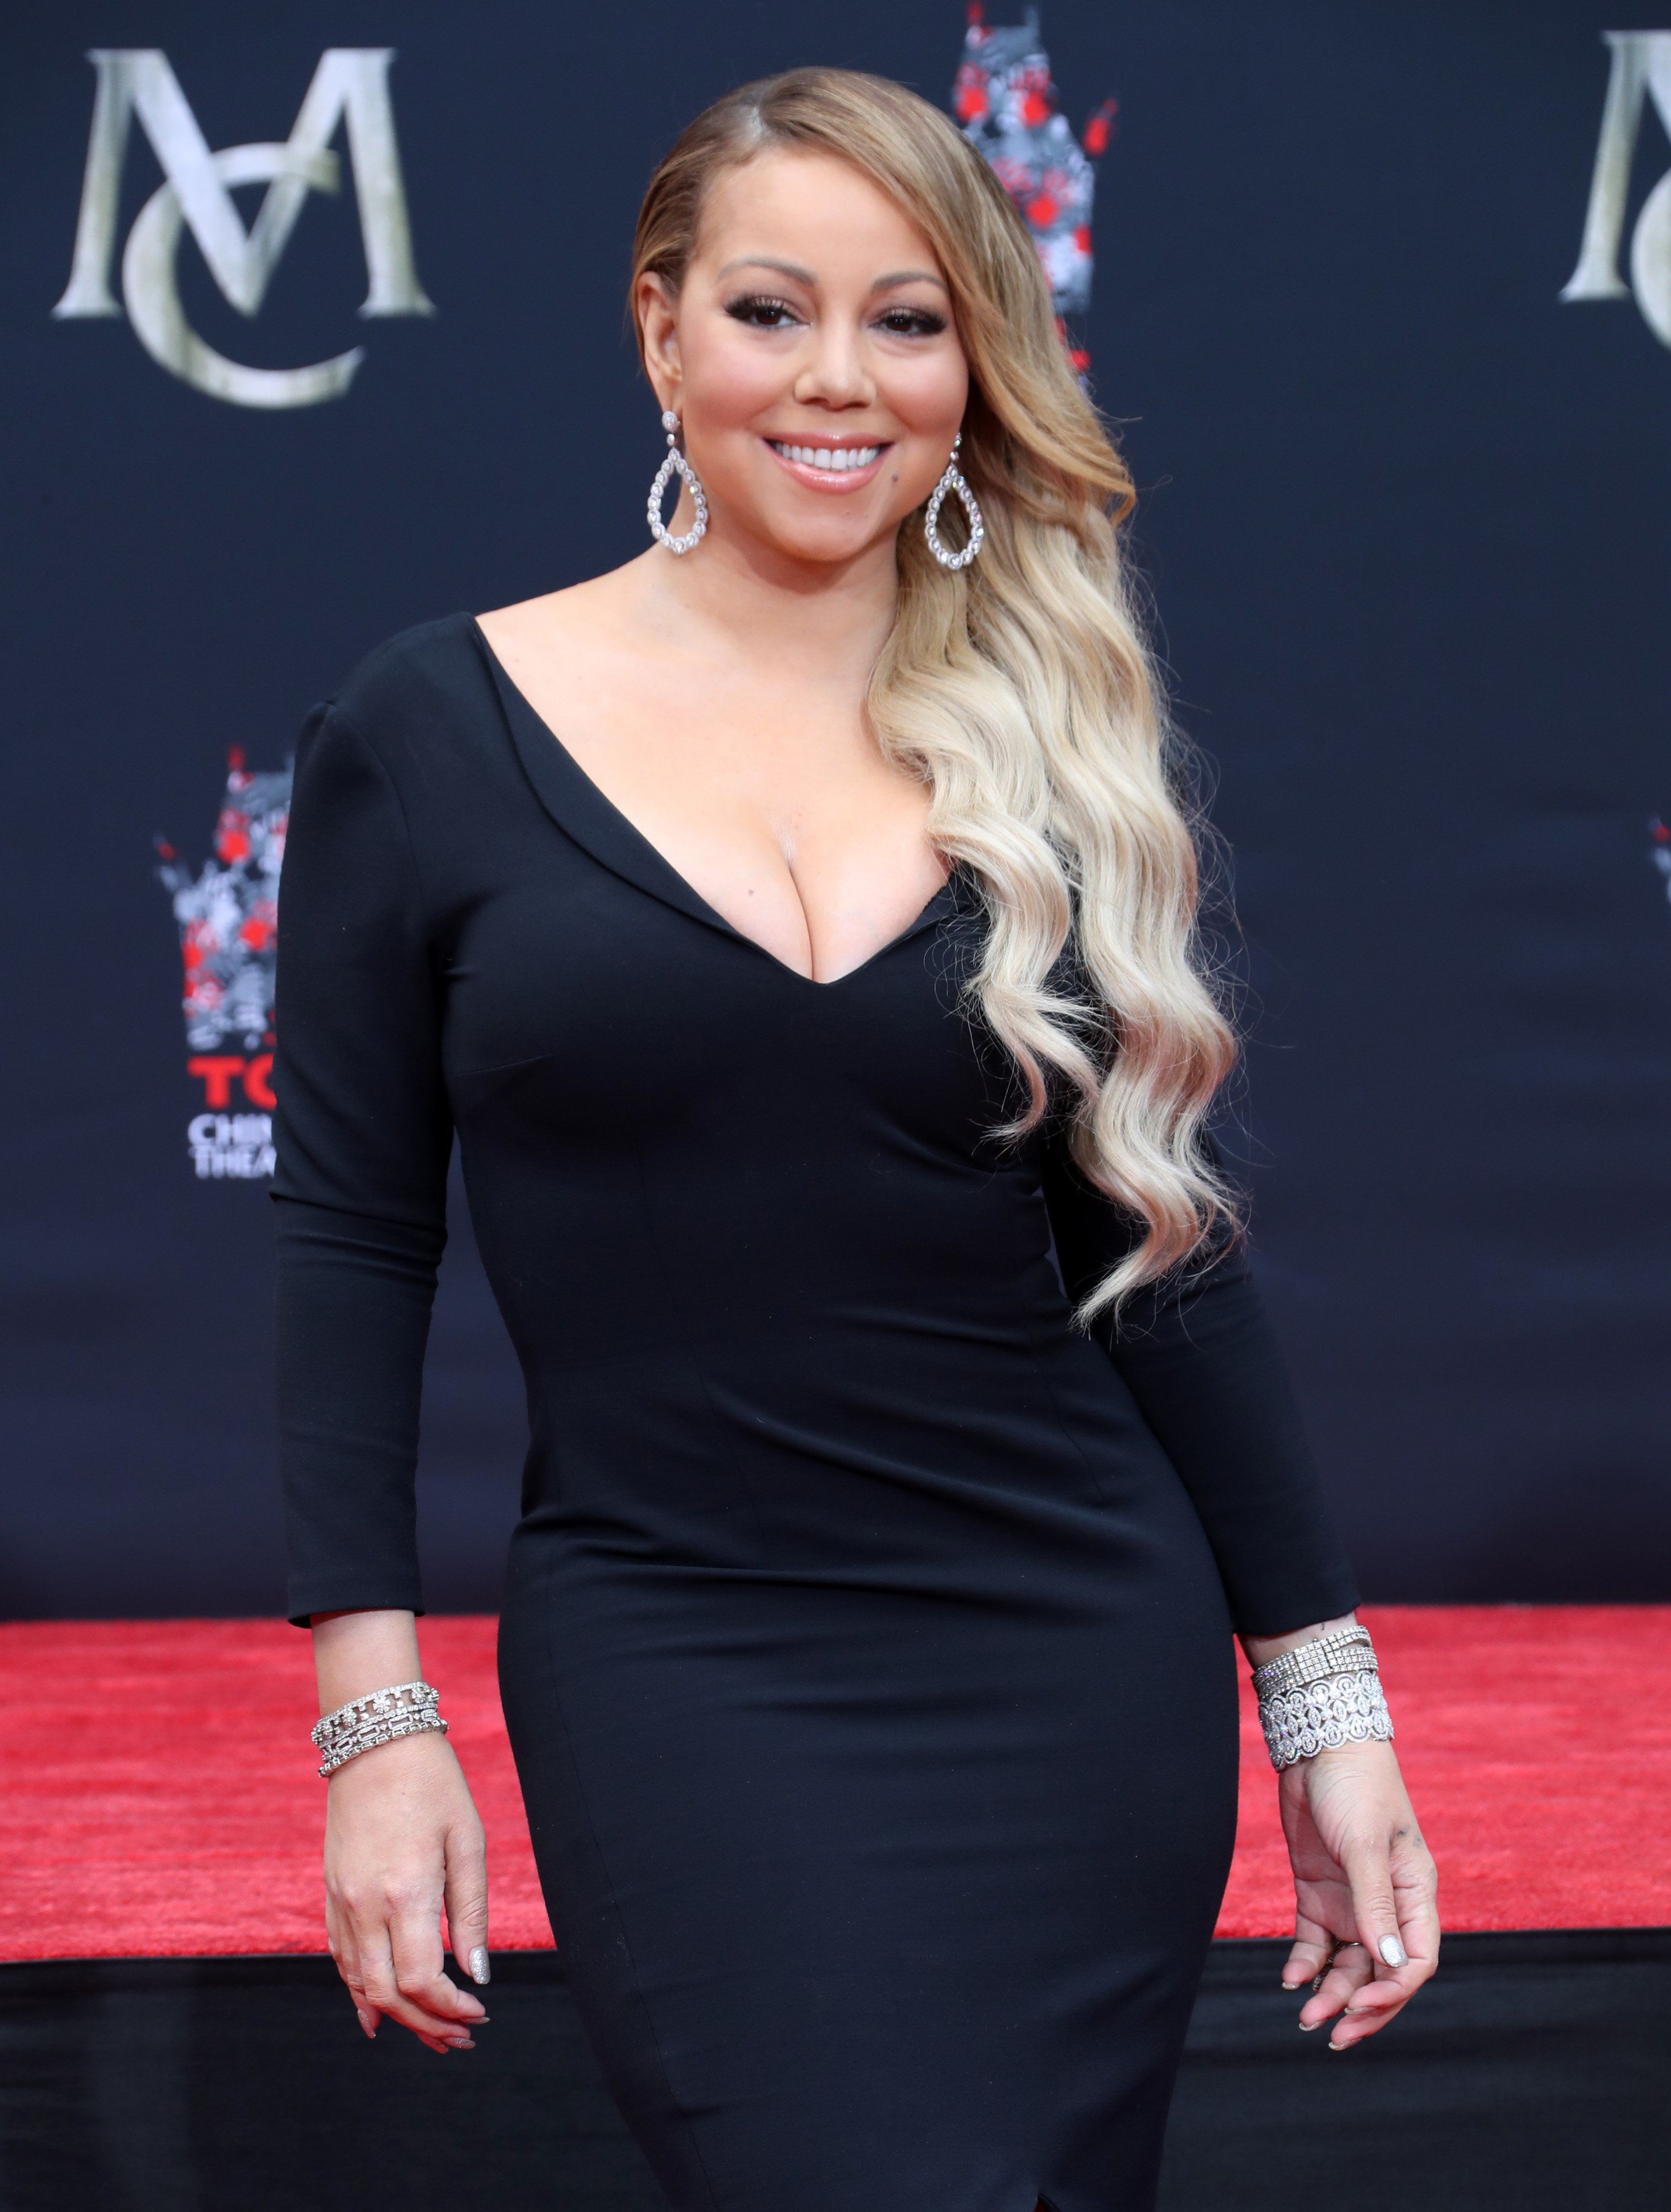 Mariah Carey Discusses Bipolar Disorder Diagnosis For The First Time